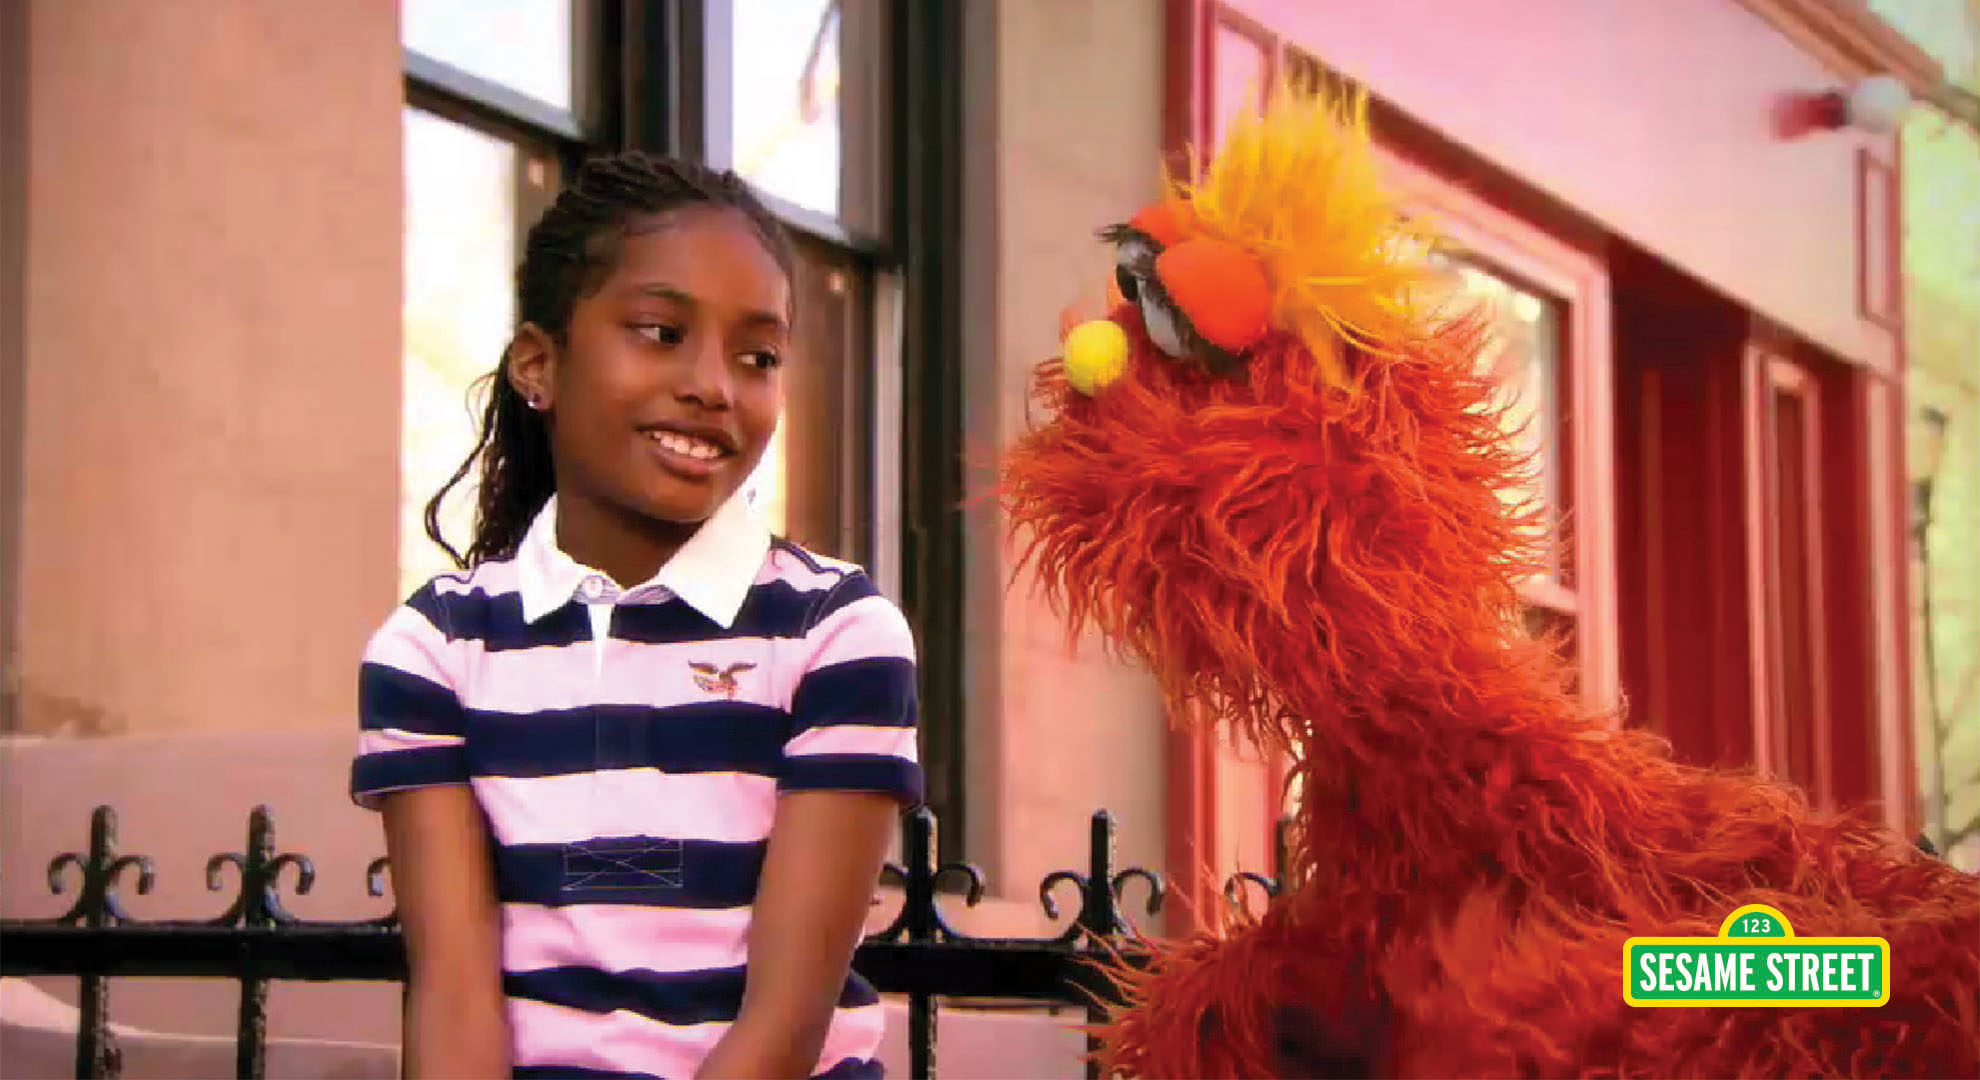 Word on the Street: Scrumptious | Sesame Street